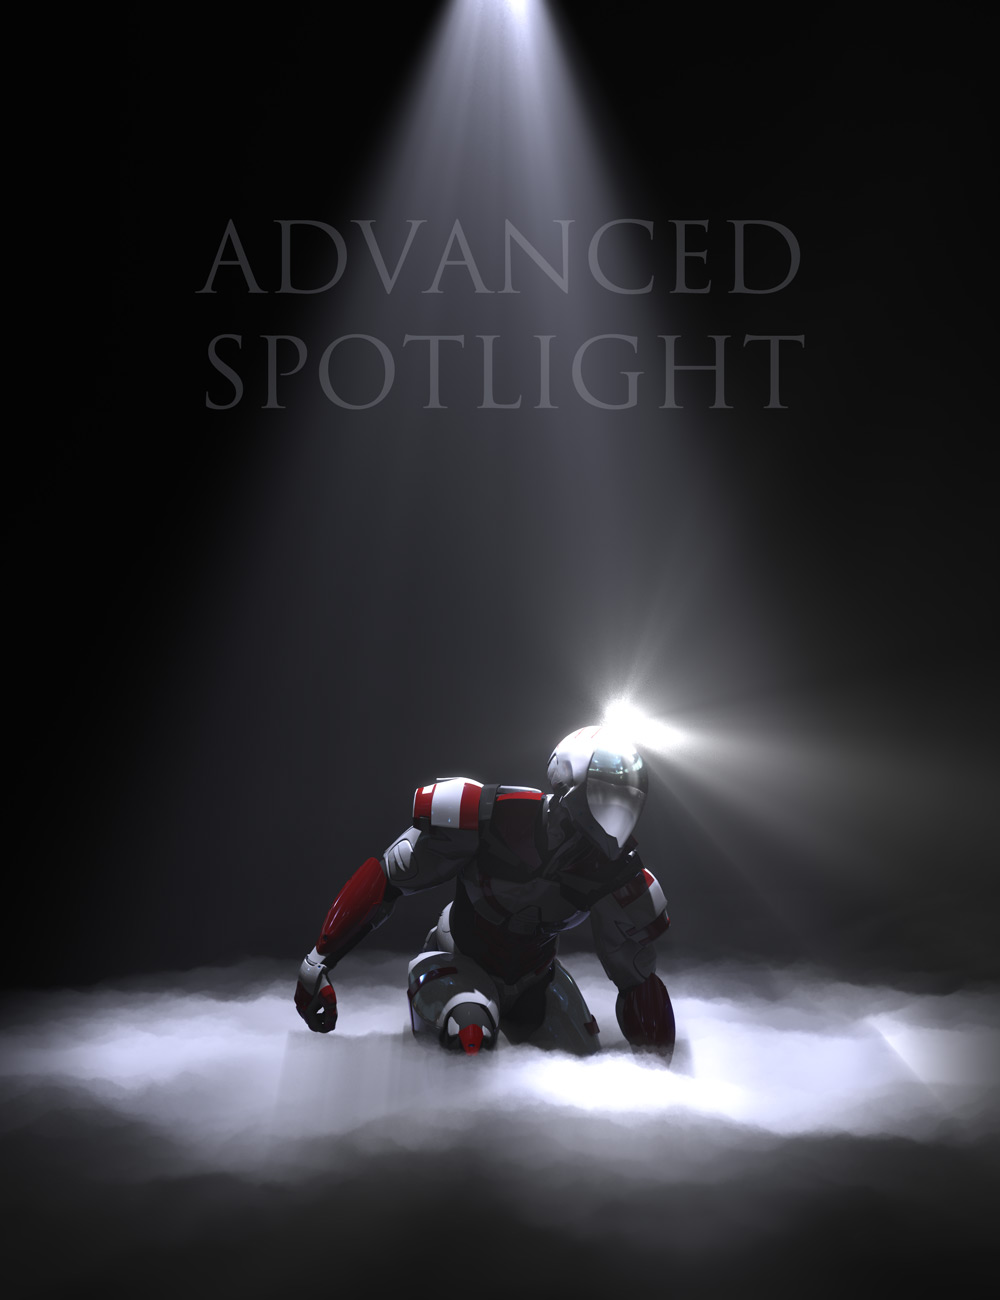 Advanced Spotlight by: Age of Armour, 3D Models by Daz 3D